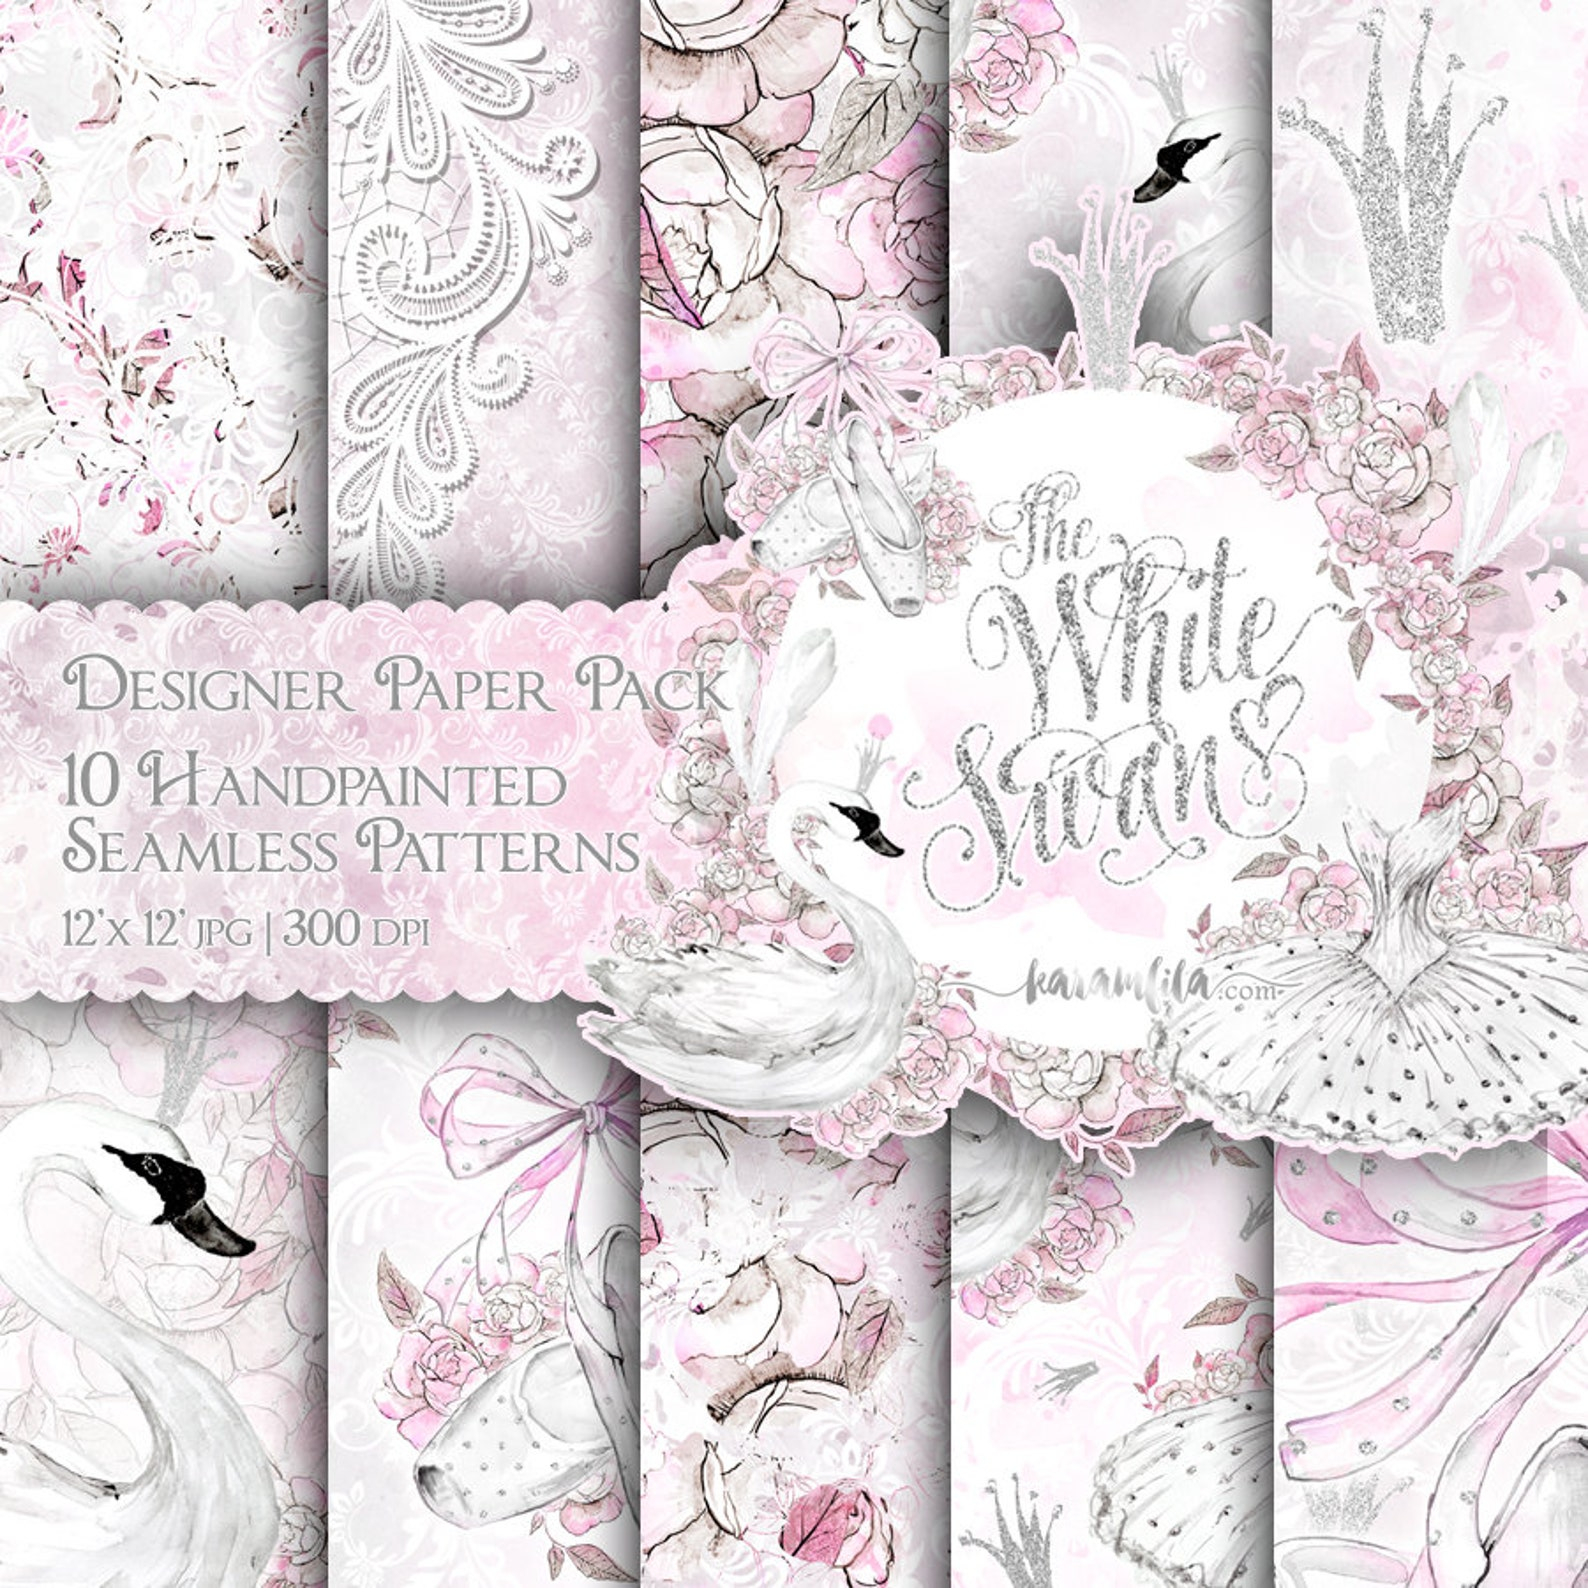 ballerina digital paper ballet watercolor swan handpainted floral seamless patterns ballet shoes feather crown silver pink glitt